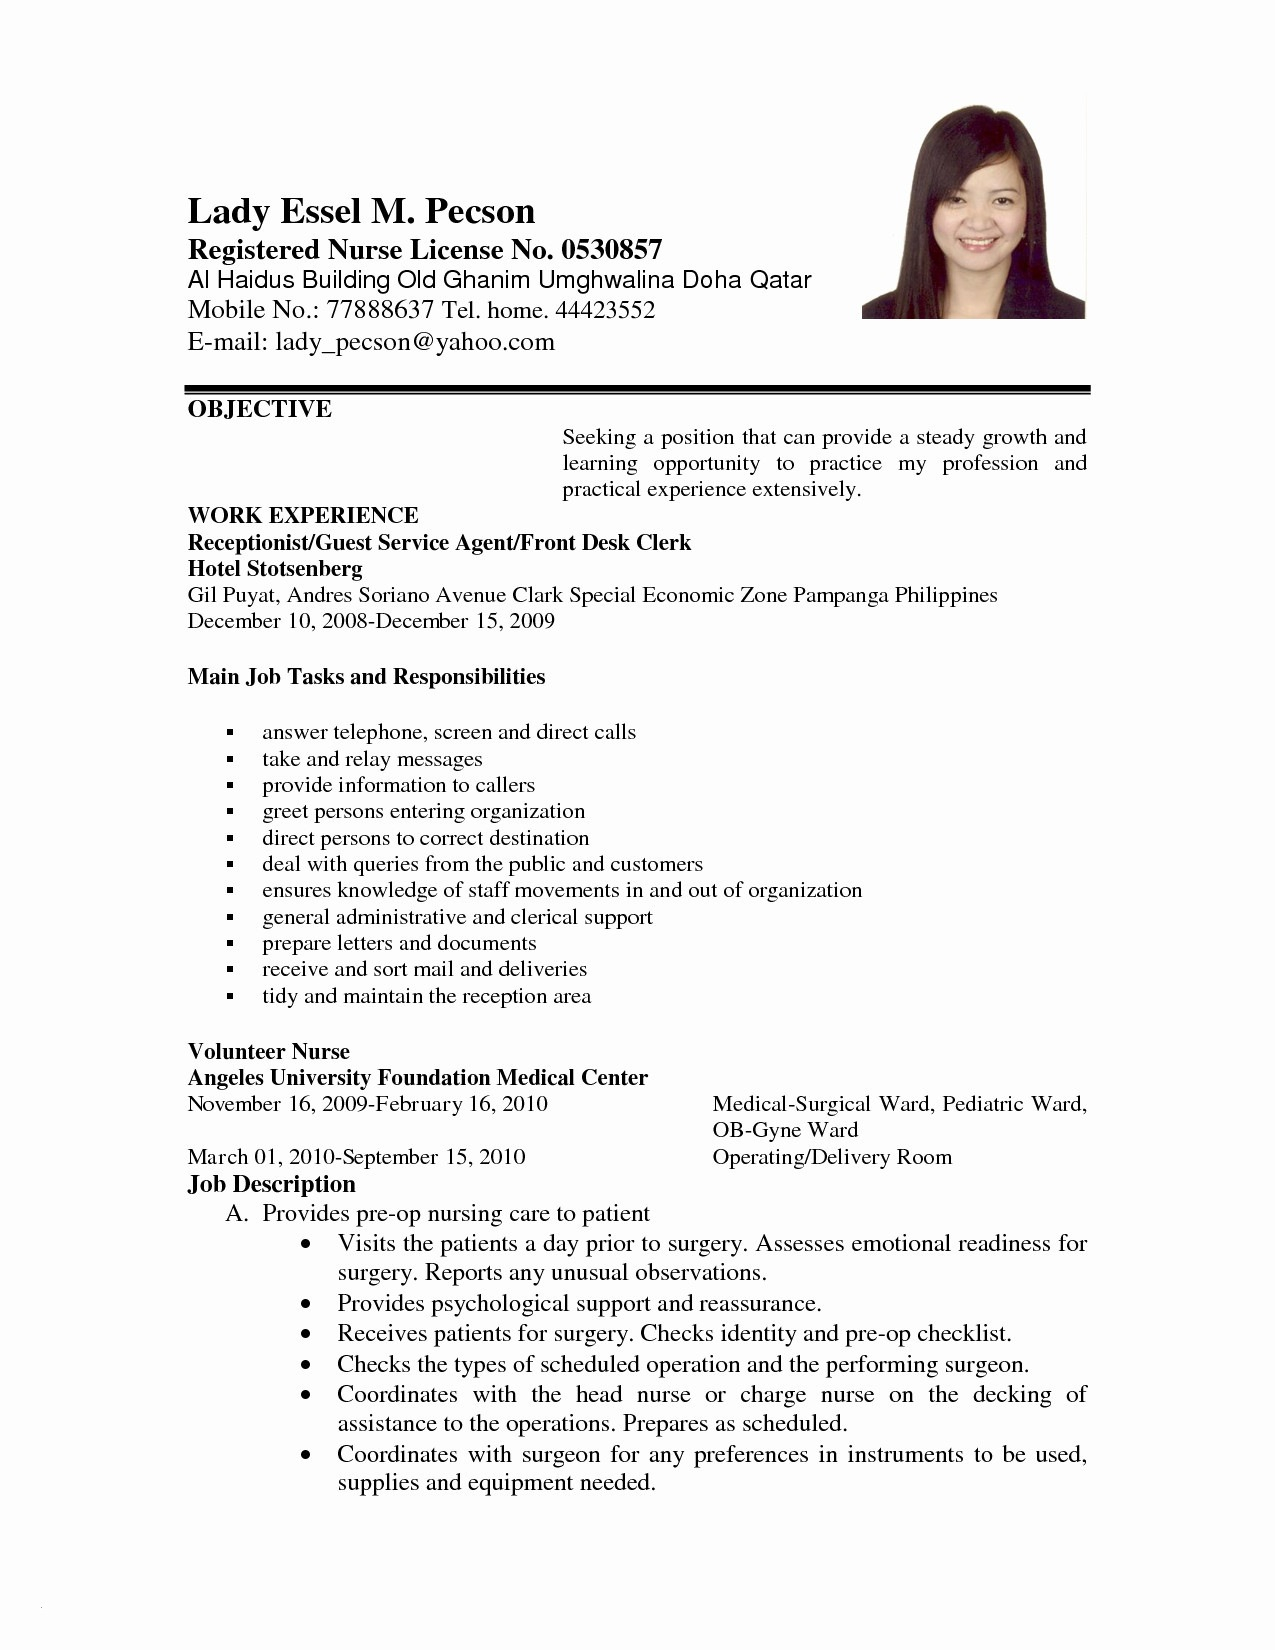 Receptionist Resume Template Free - Simple Resume form Paragraphrewriter Paragraphrewriter